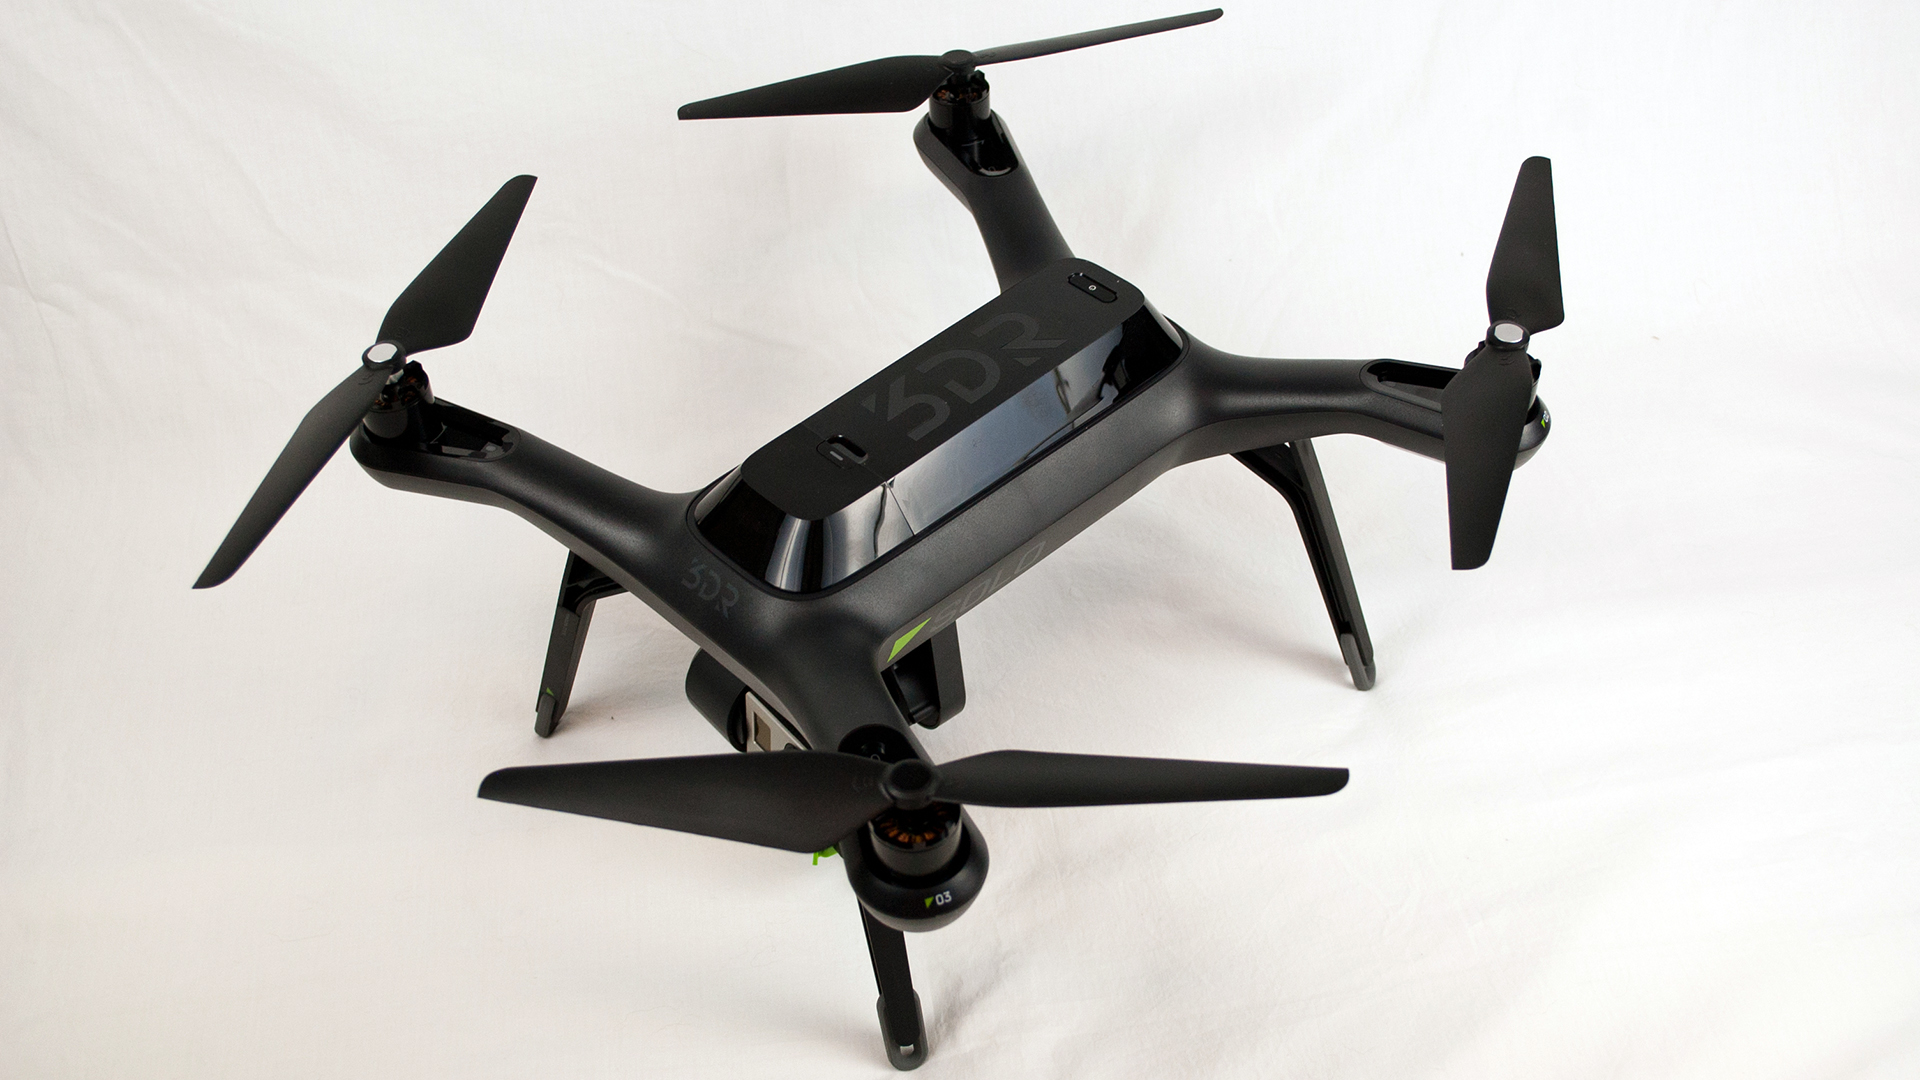 Tested: 3D Robotics Solo Quadcopter - Tested